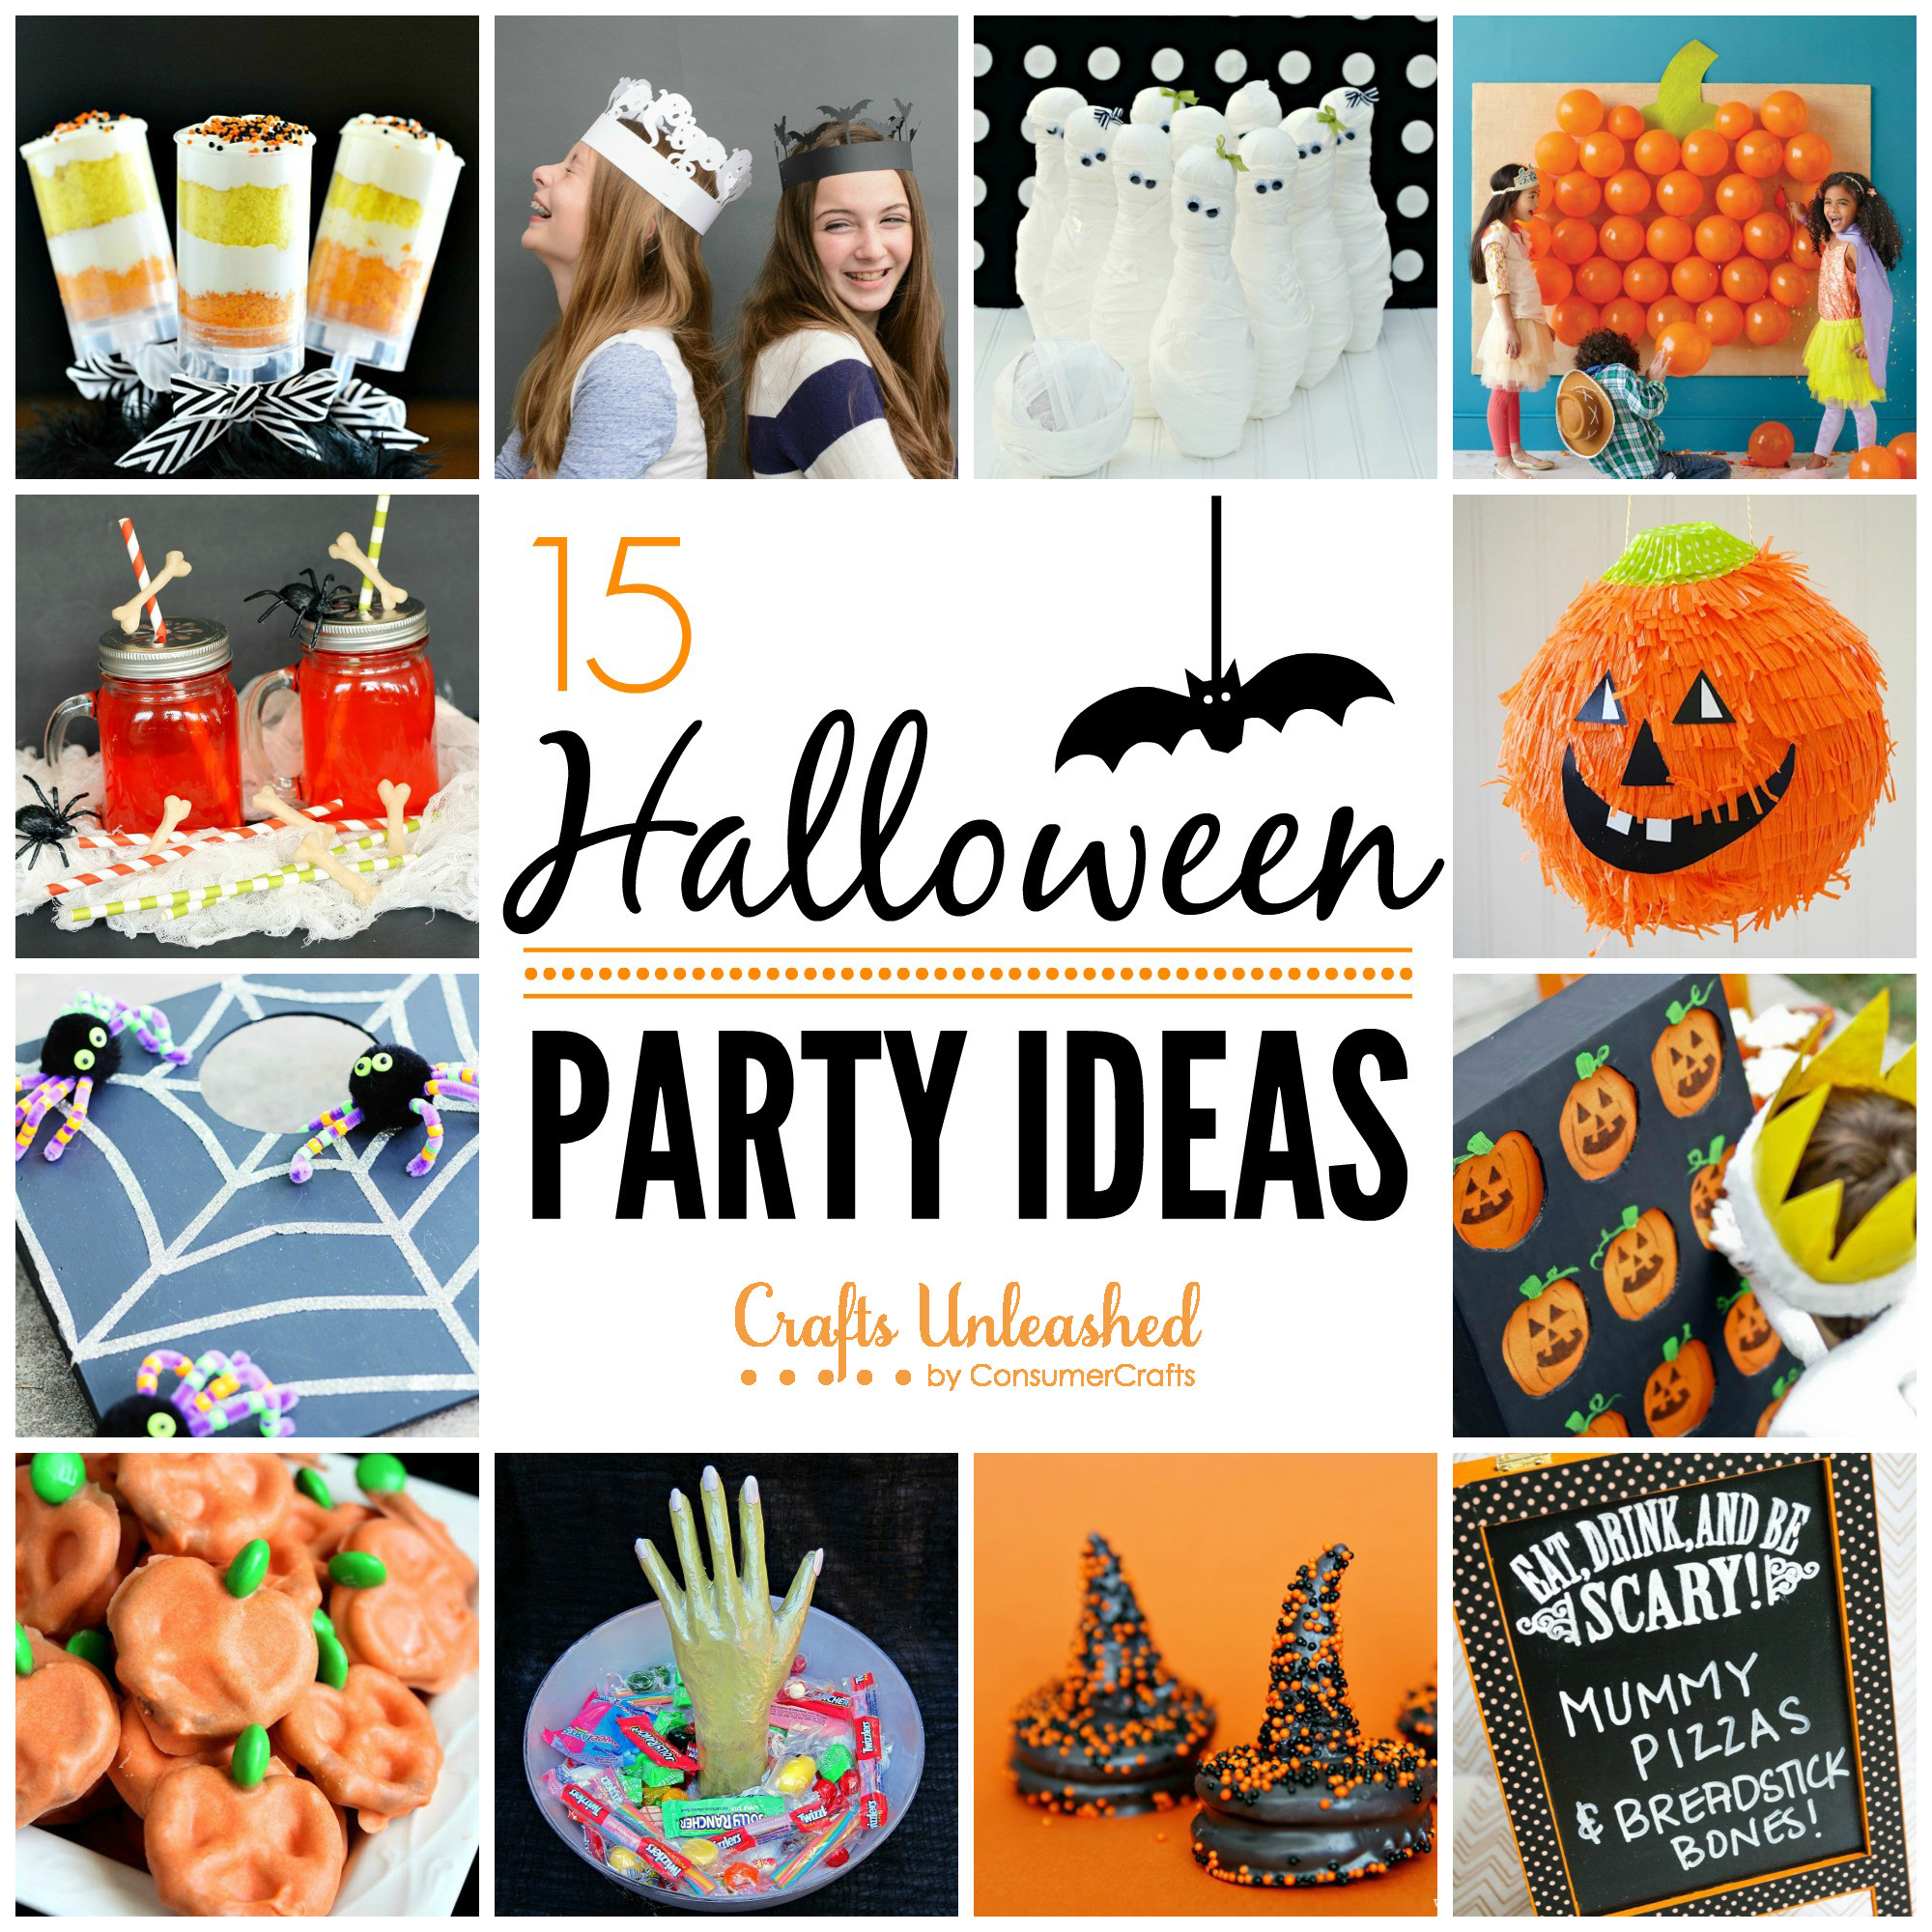 Halloween Party Craft Ideas  Halloween Party Ideas Crafts Unleashed